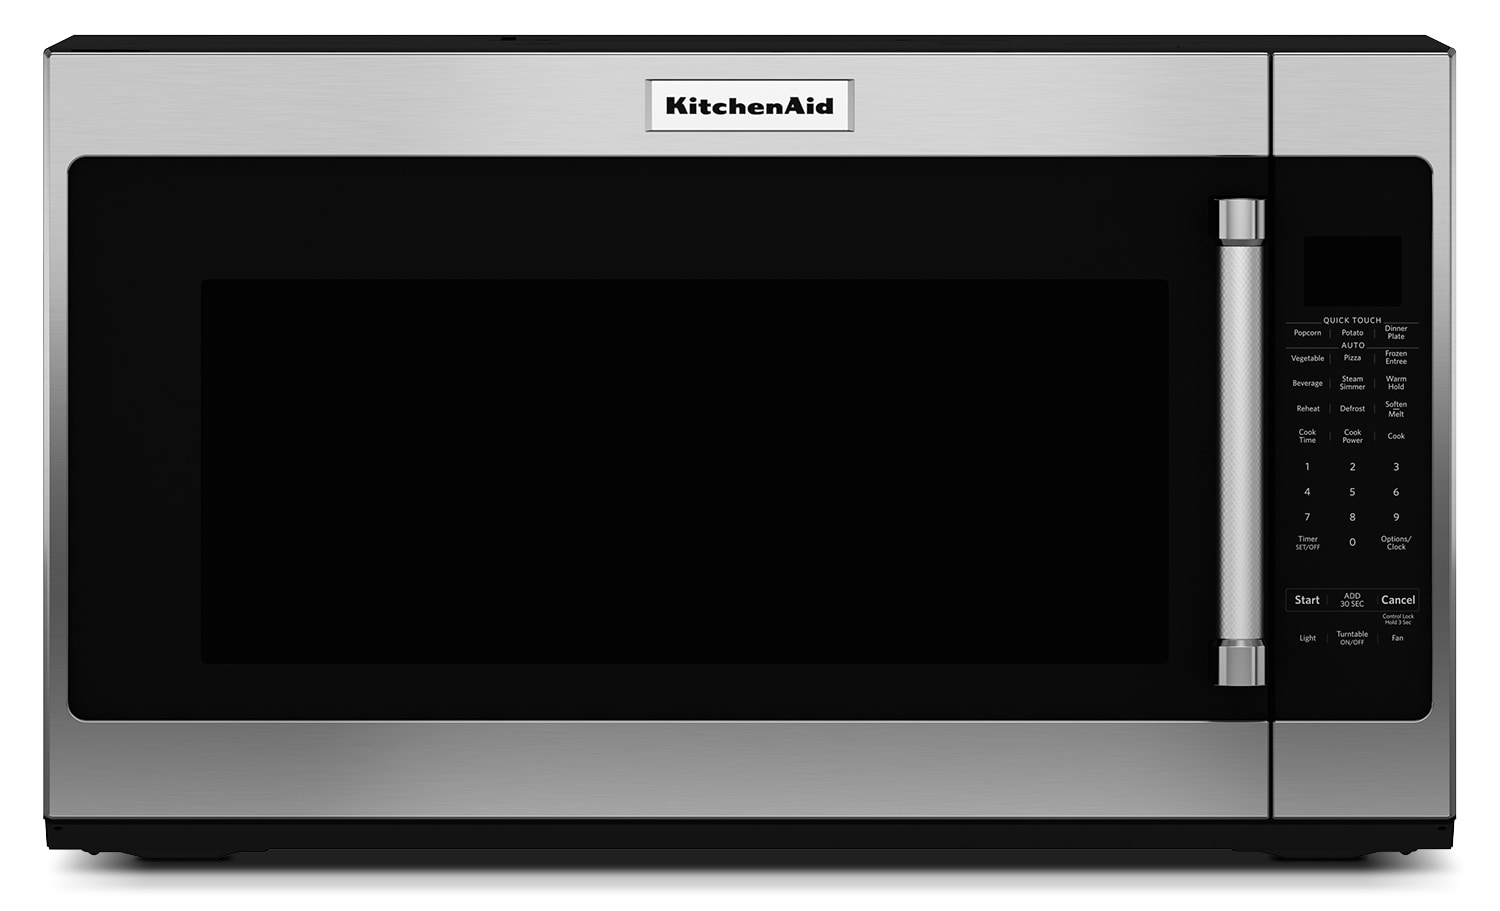 Cooking Products - KitchenAid Stainless Steel Over-the-Range Microwave (2 Cu. Ft.) - YKMHS120ES